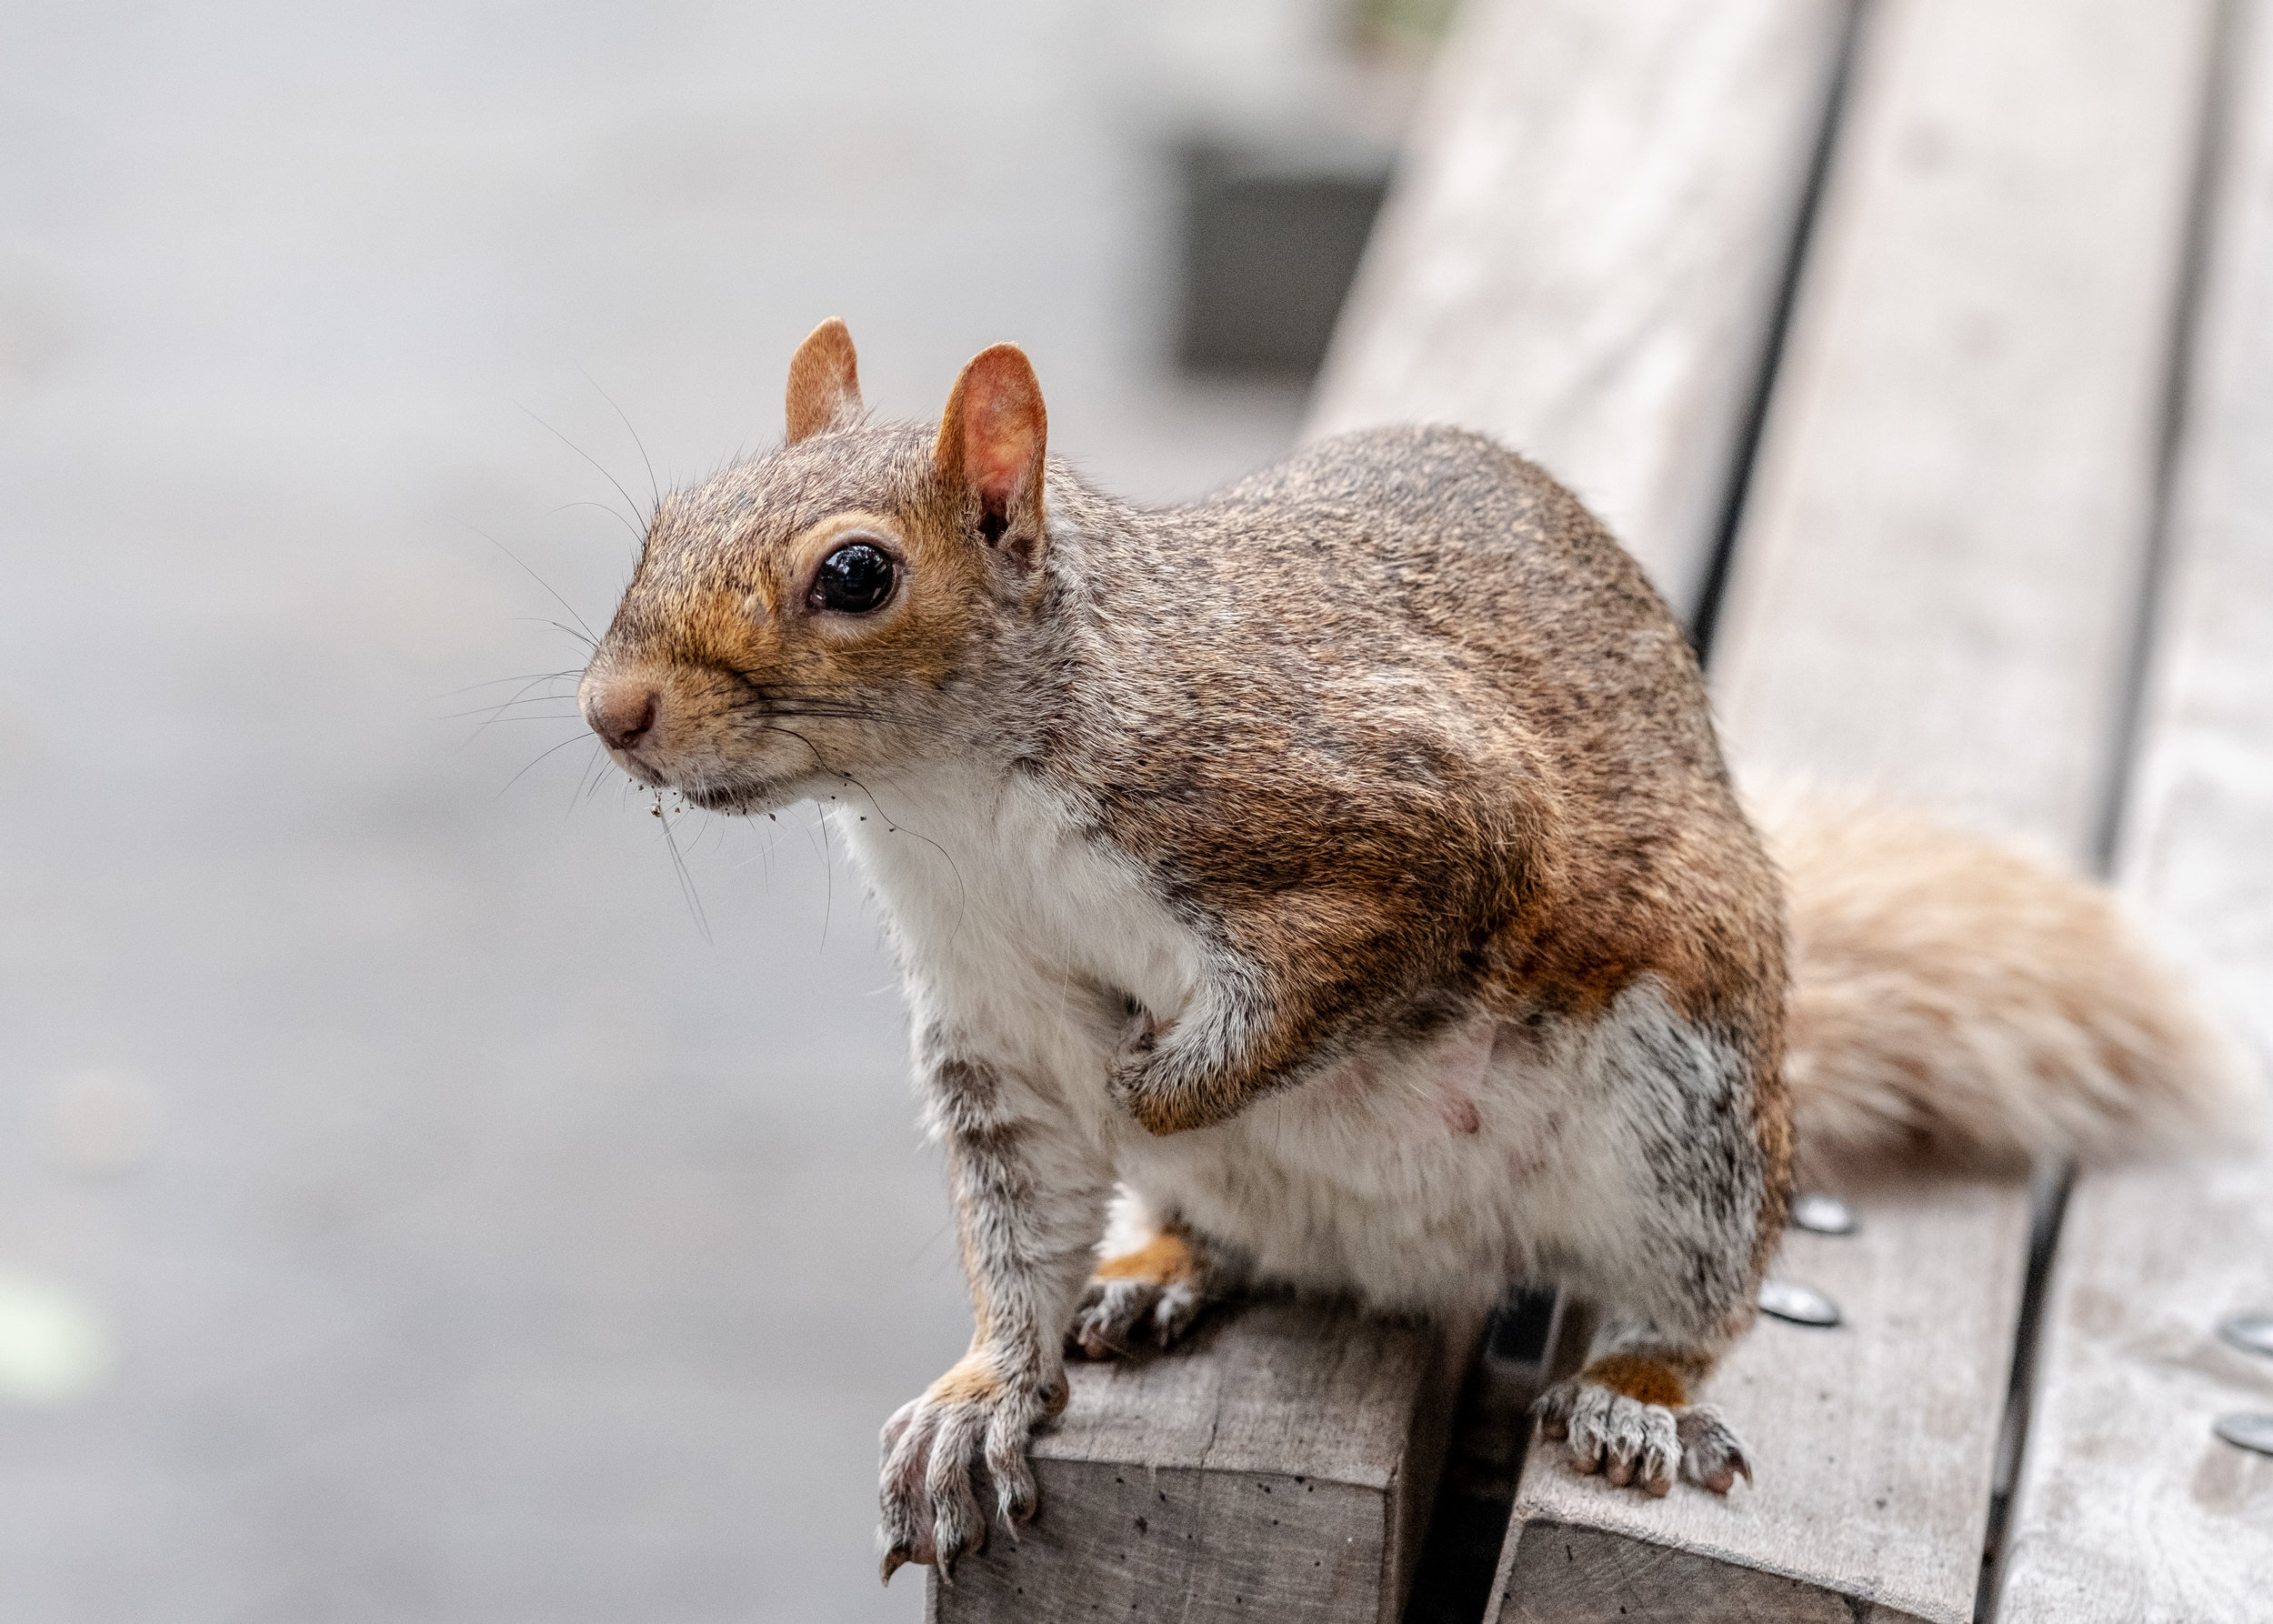 Squirrel on a bench in the park